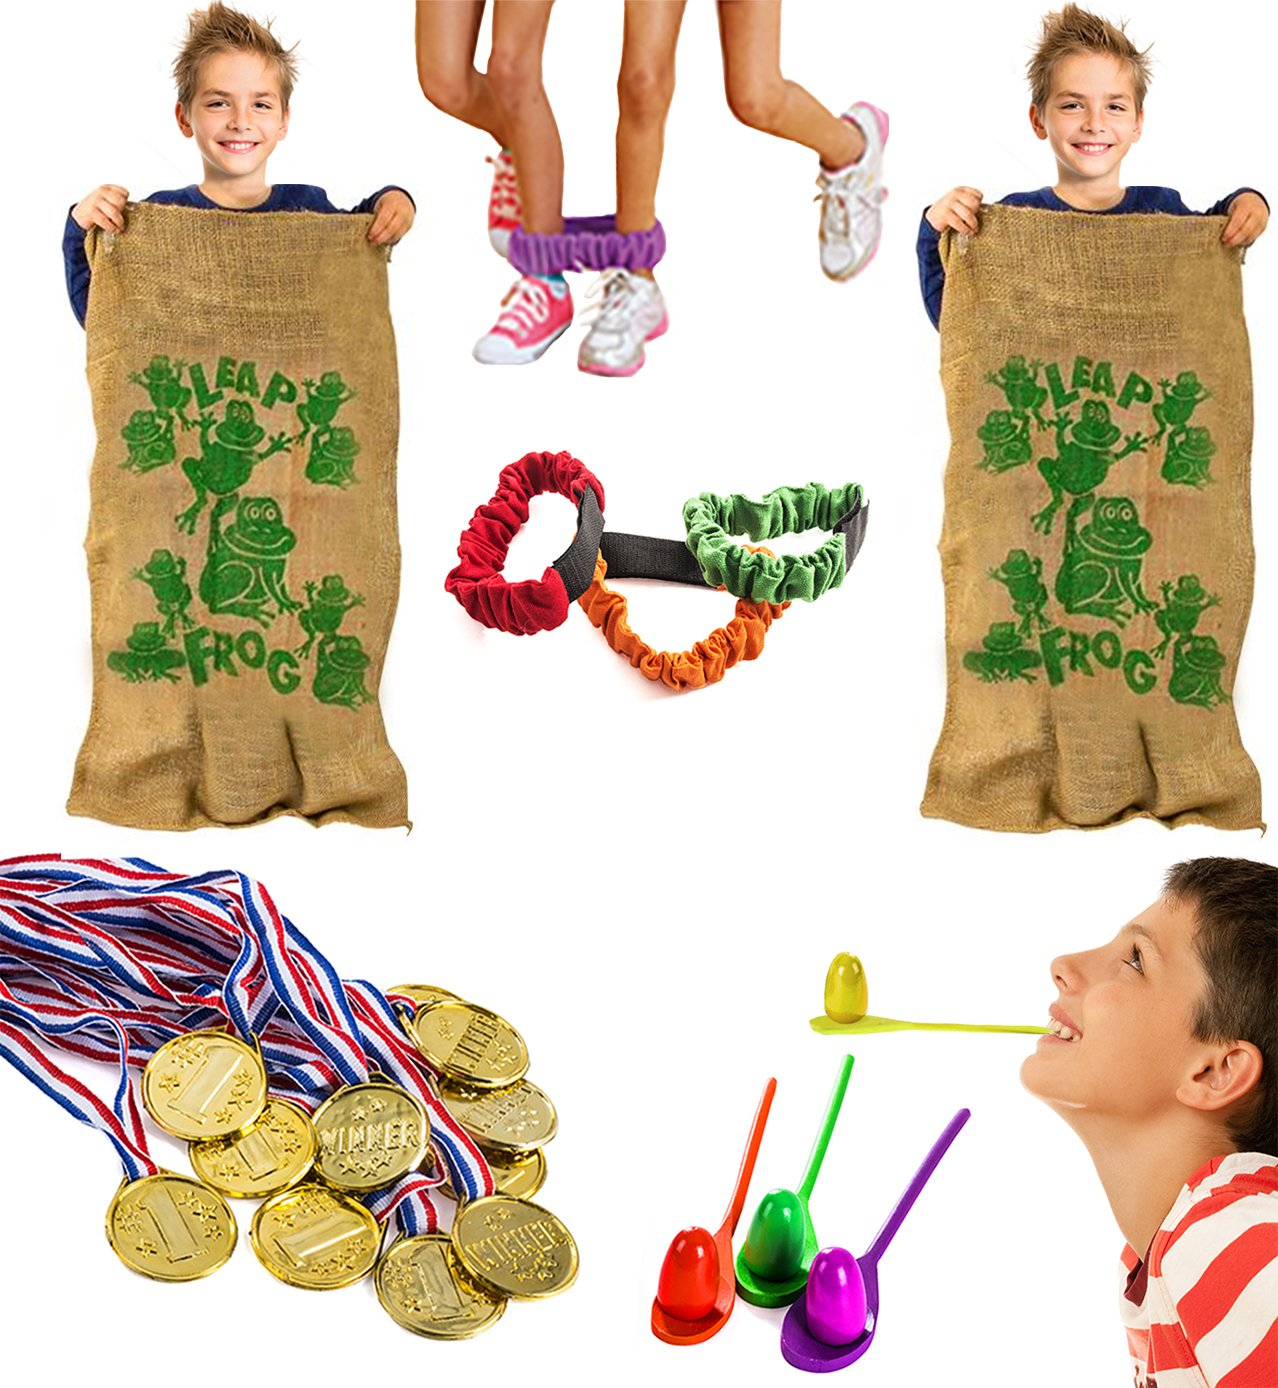 Tigerdoe Carnival Games - Relay Races - Party Games - Birthday Games - Outdoor Activities by (Potatoe Sacks, Race Bands, Egg & Spoon Game, Metal Necklaces) by Tigerdoe